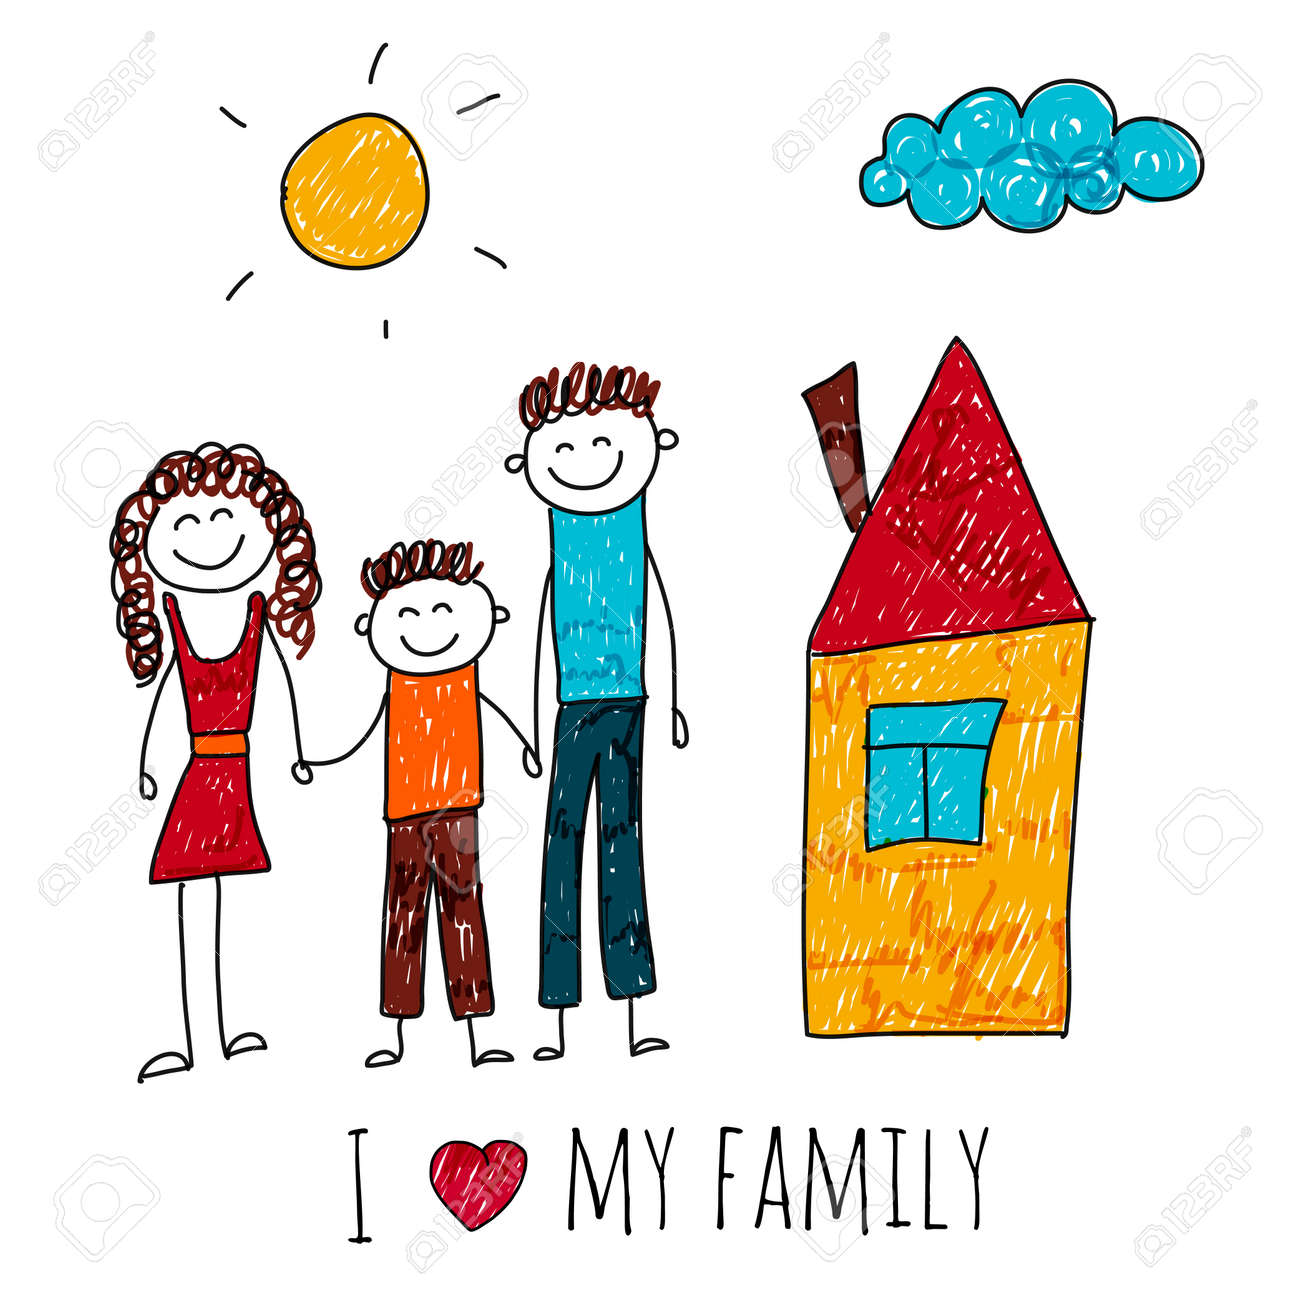 Image Of Happy Family With House Kids Drawing I Love My Family Royalty Free Cliparts Vectors And Stock Illustration Image 48793183